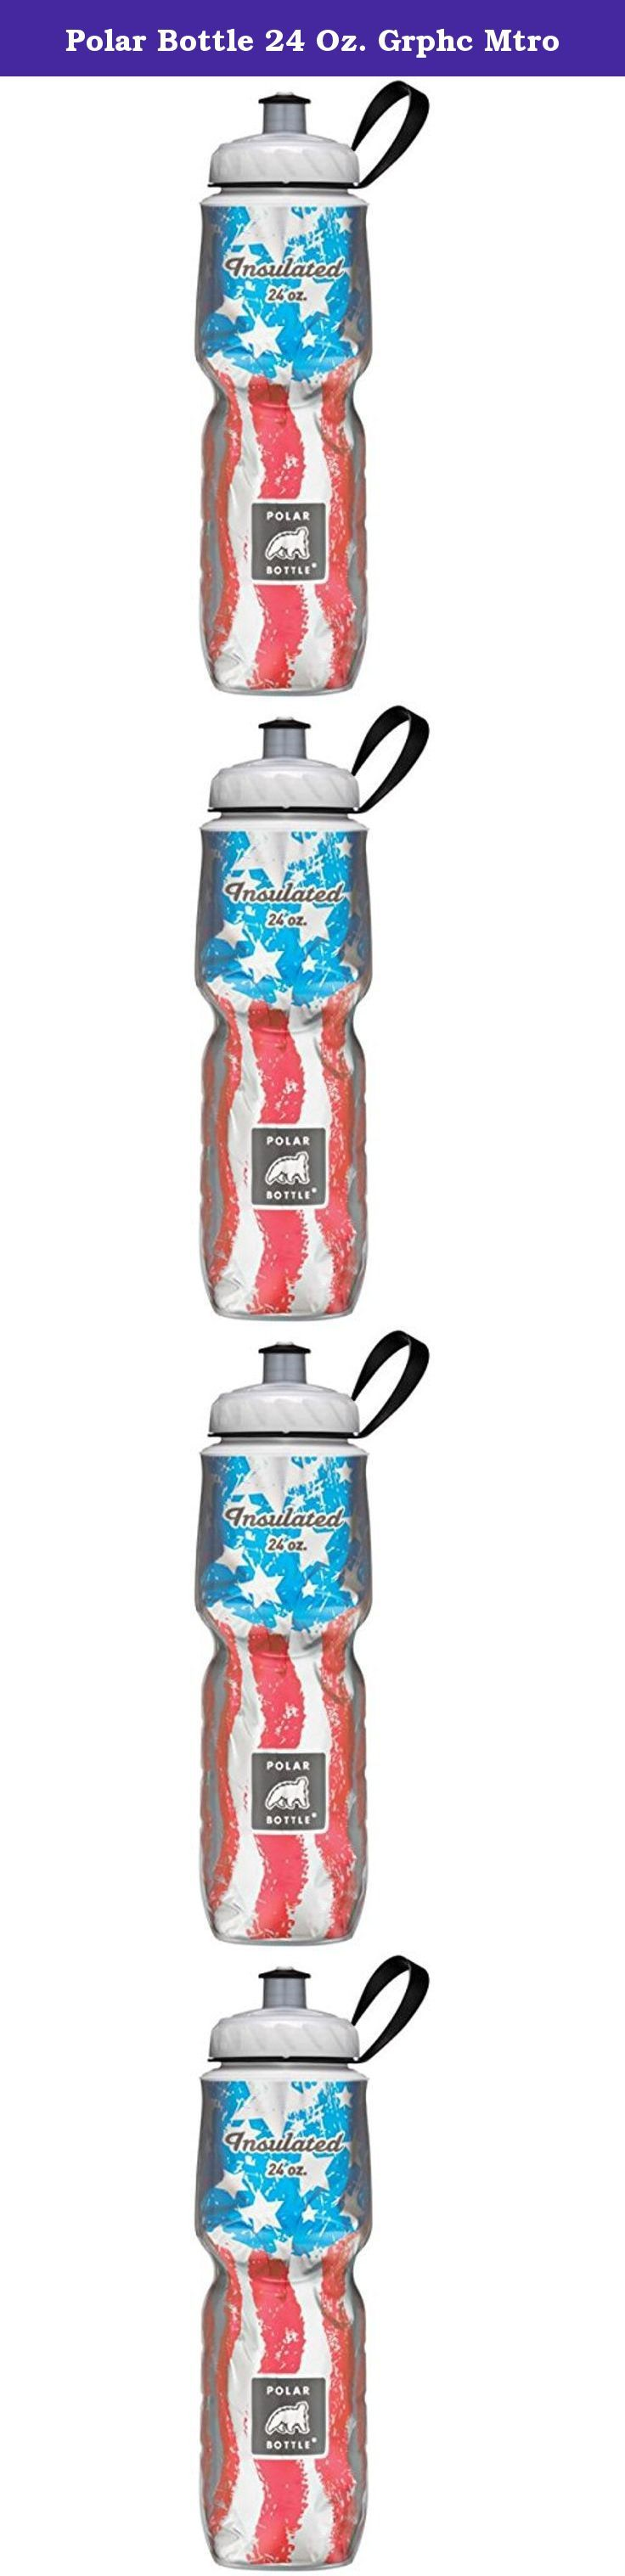 Polar Bottle 24 Oz. Grphc Mtro. Drinking water stays cool in the insulated sport water bottle. The double wall construction and reflective foil layer form a thermal barrier that effectively insulates. Fits a standard bicycle cage. Removable valve for easy cleaning. Dishwasher safe.